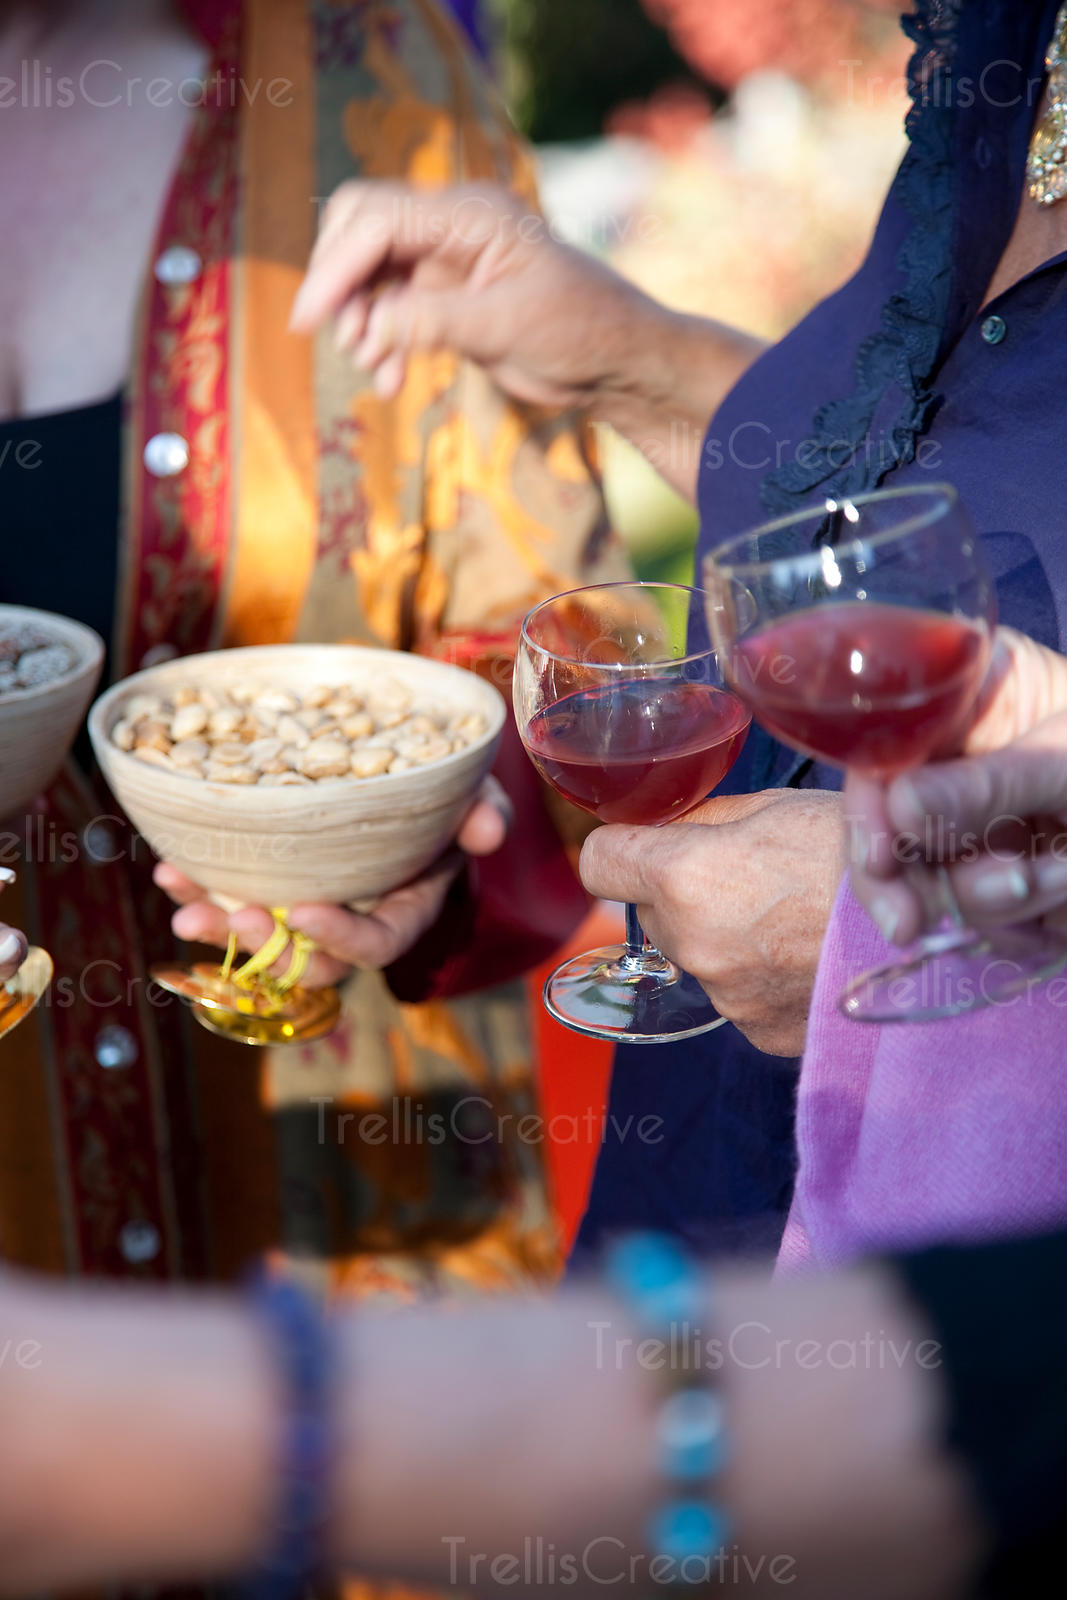 Guests eat marcona almonds and drink red wine at a Moroccan themed party